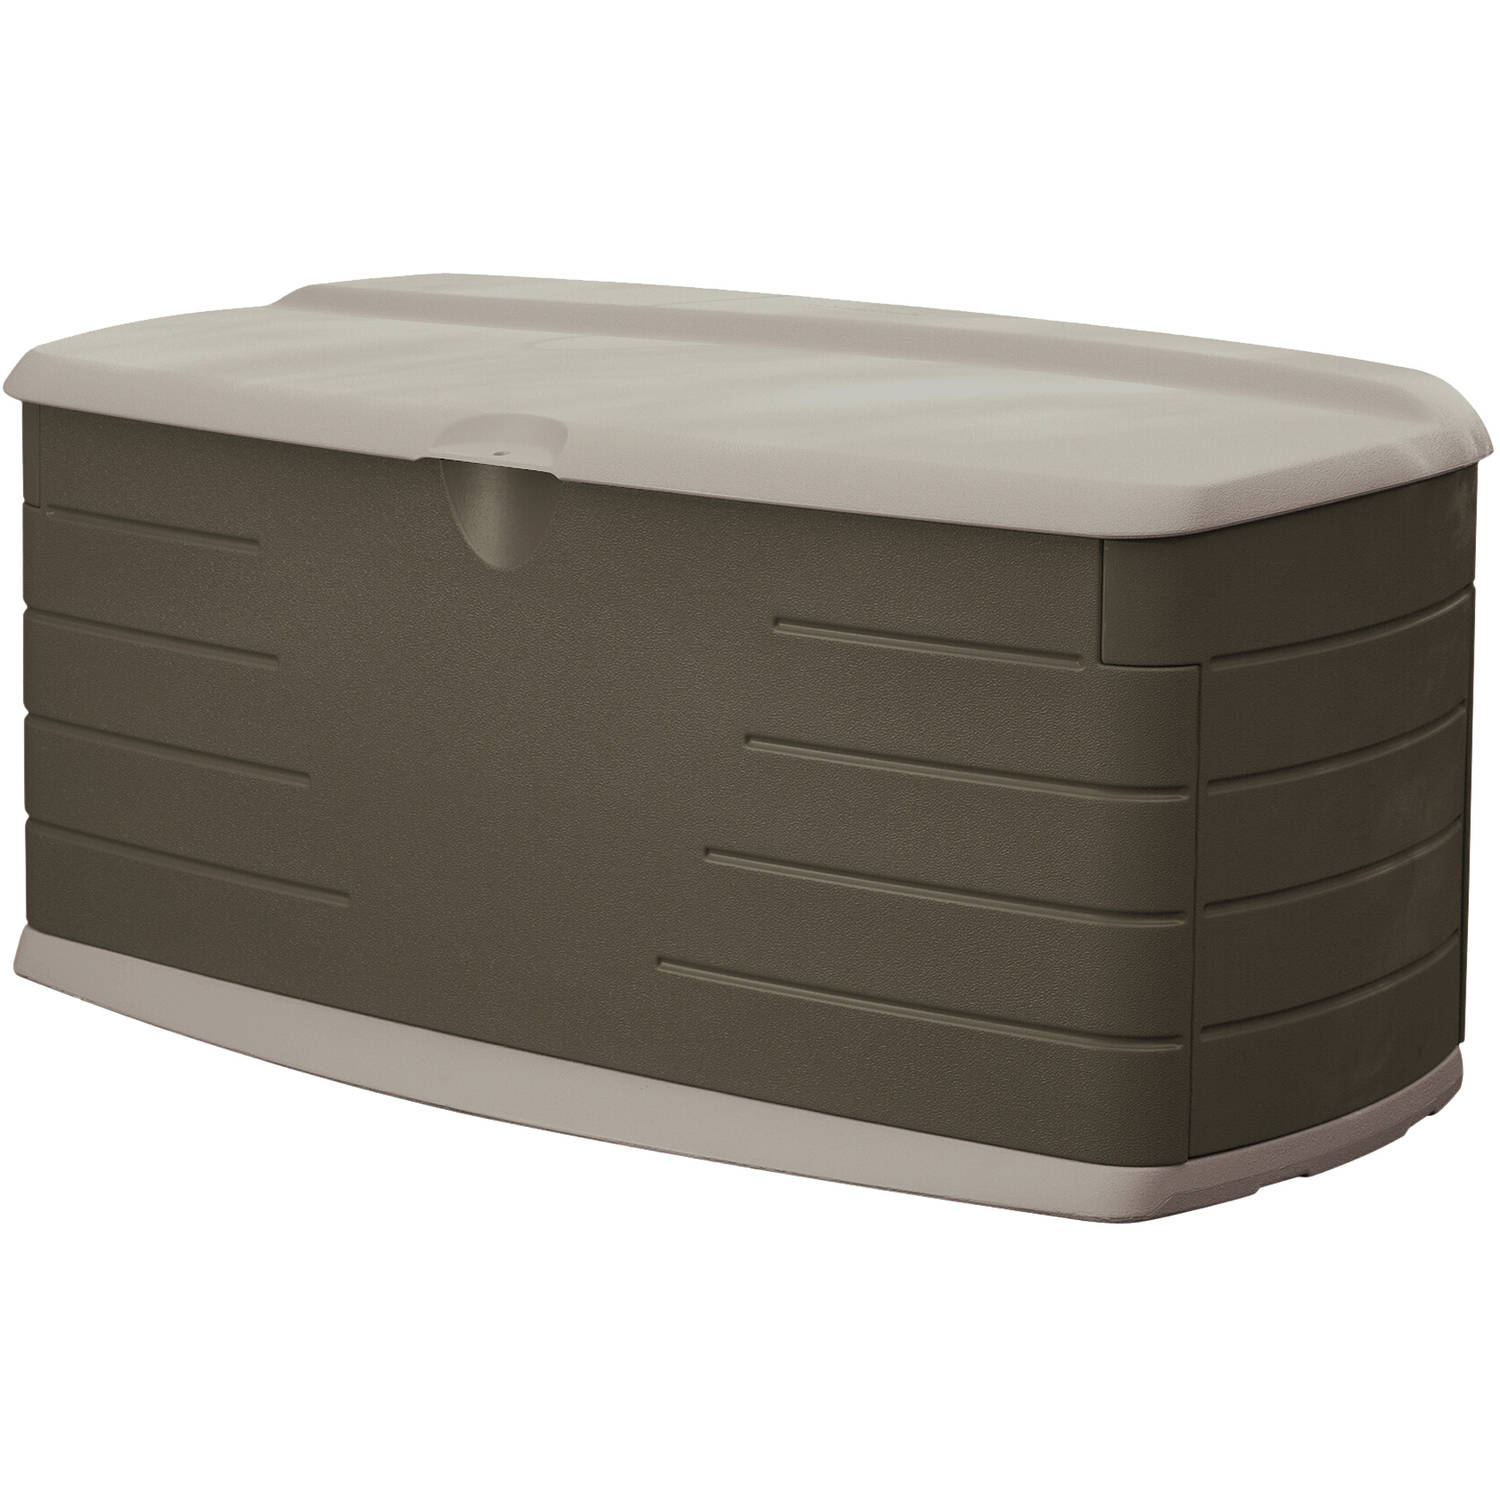 Rubbermaid Large Deck Box with Seat